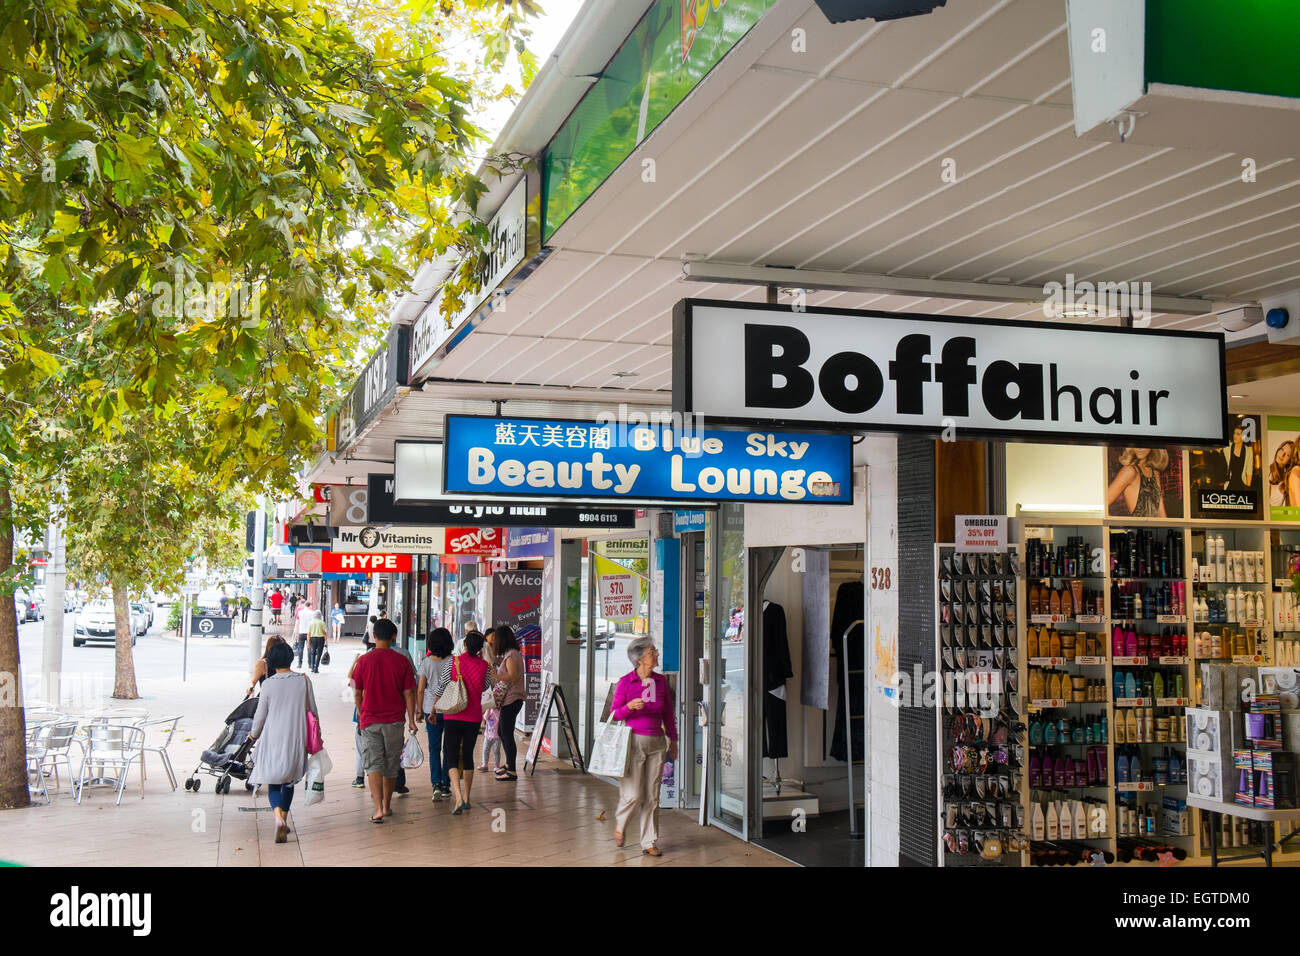 Top Toy Shops in Sydney New South Wales - Hobbyco, Just White, Games Paradise - Pitt Street, Morning Glory, Terrific Scientific, Kidstuff, Animeworks, Flying Penguin Extraordinary Educational Toys, Kidstuff Toy Store, Playscene Hobbies & Toys.